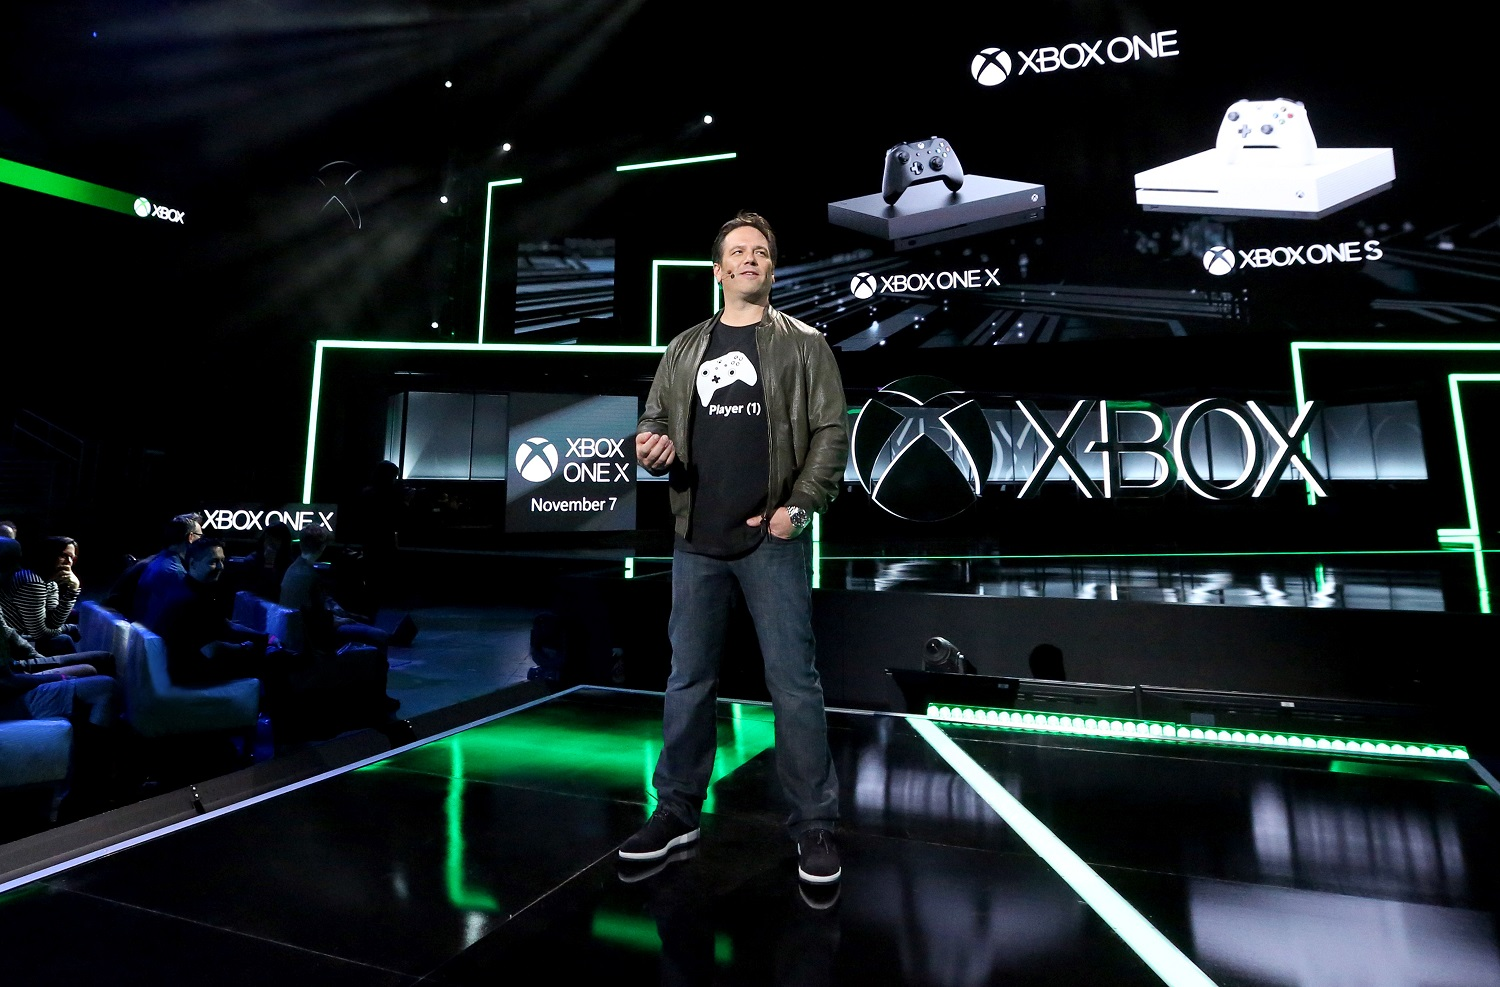 Juegos Confirmados Con Optimizacion Para Xbox One X Hd Tecnologia